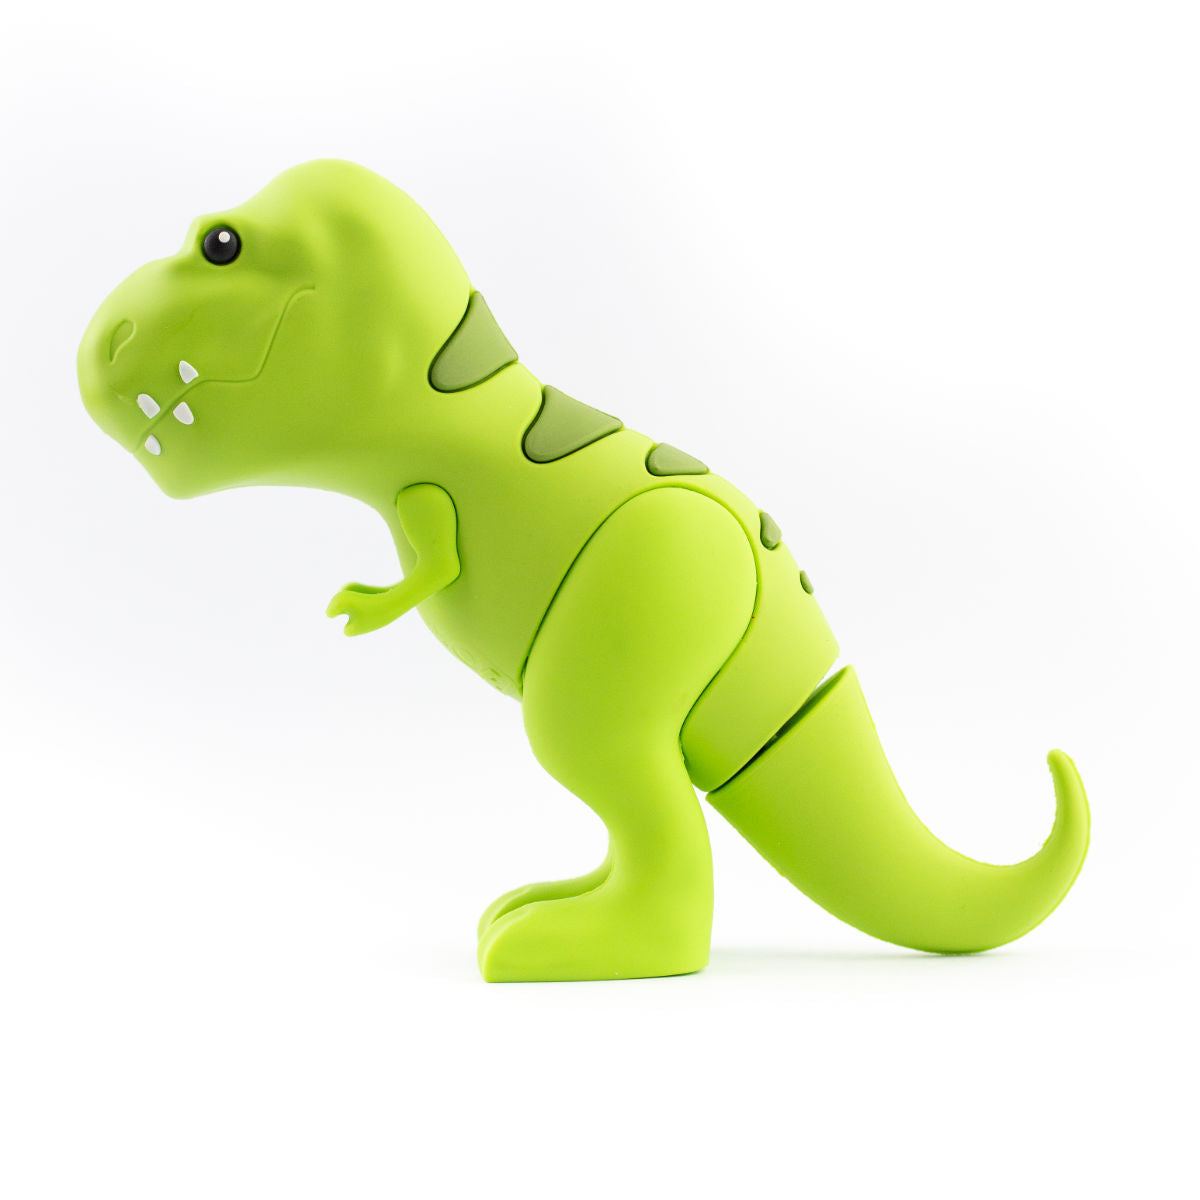 Moji Emoji power bank 2600mAh, dino